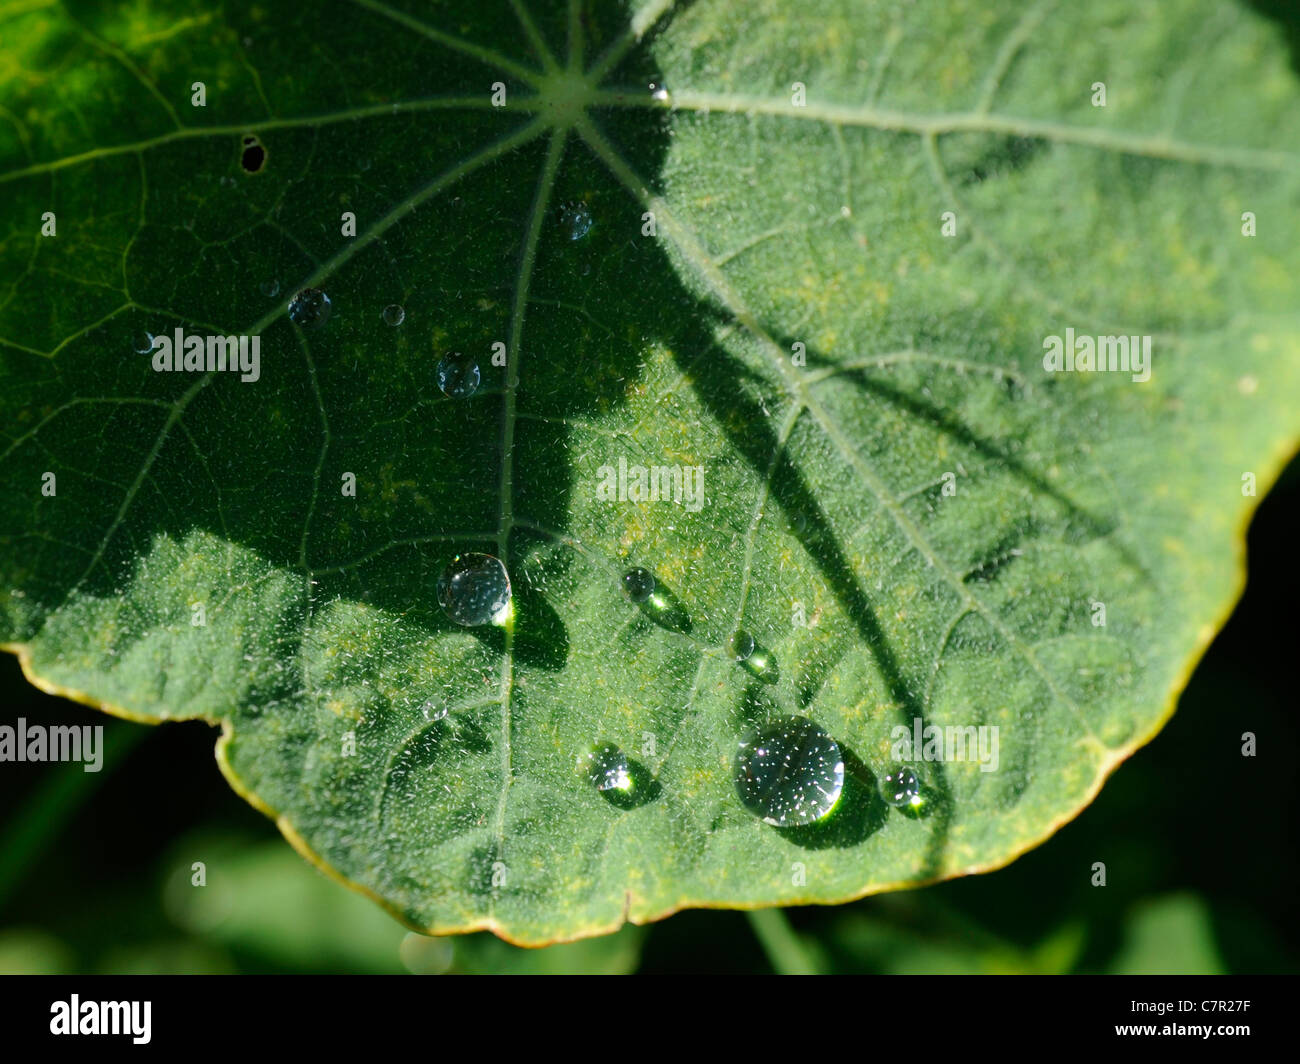 Drops of water on a nasturtium leaf Stock Photo